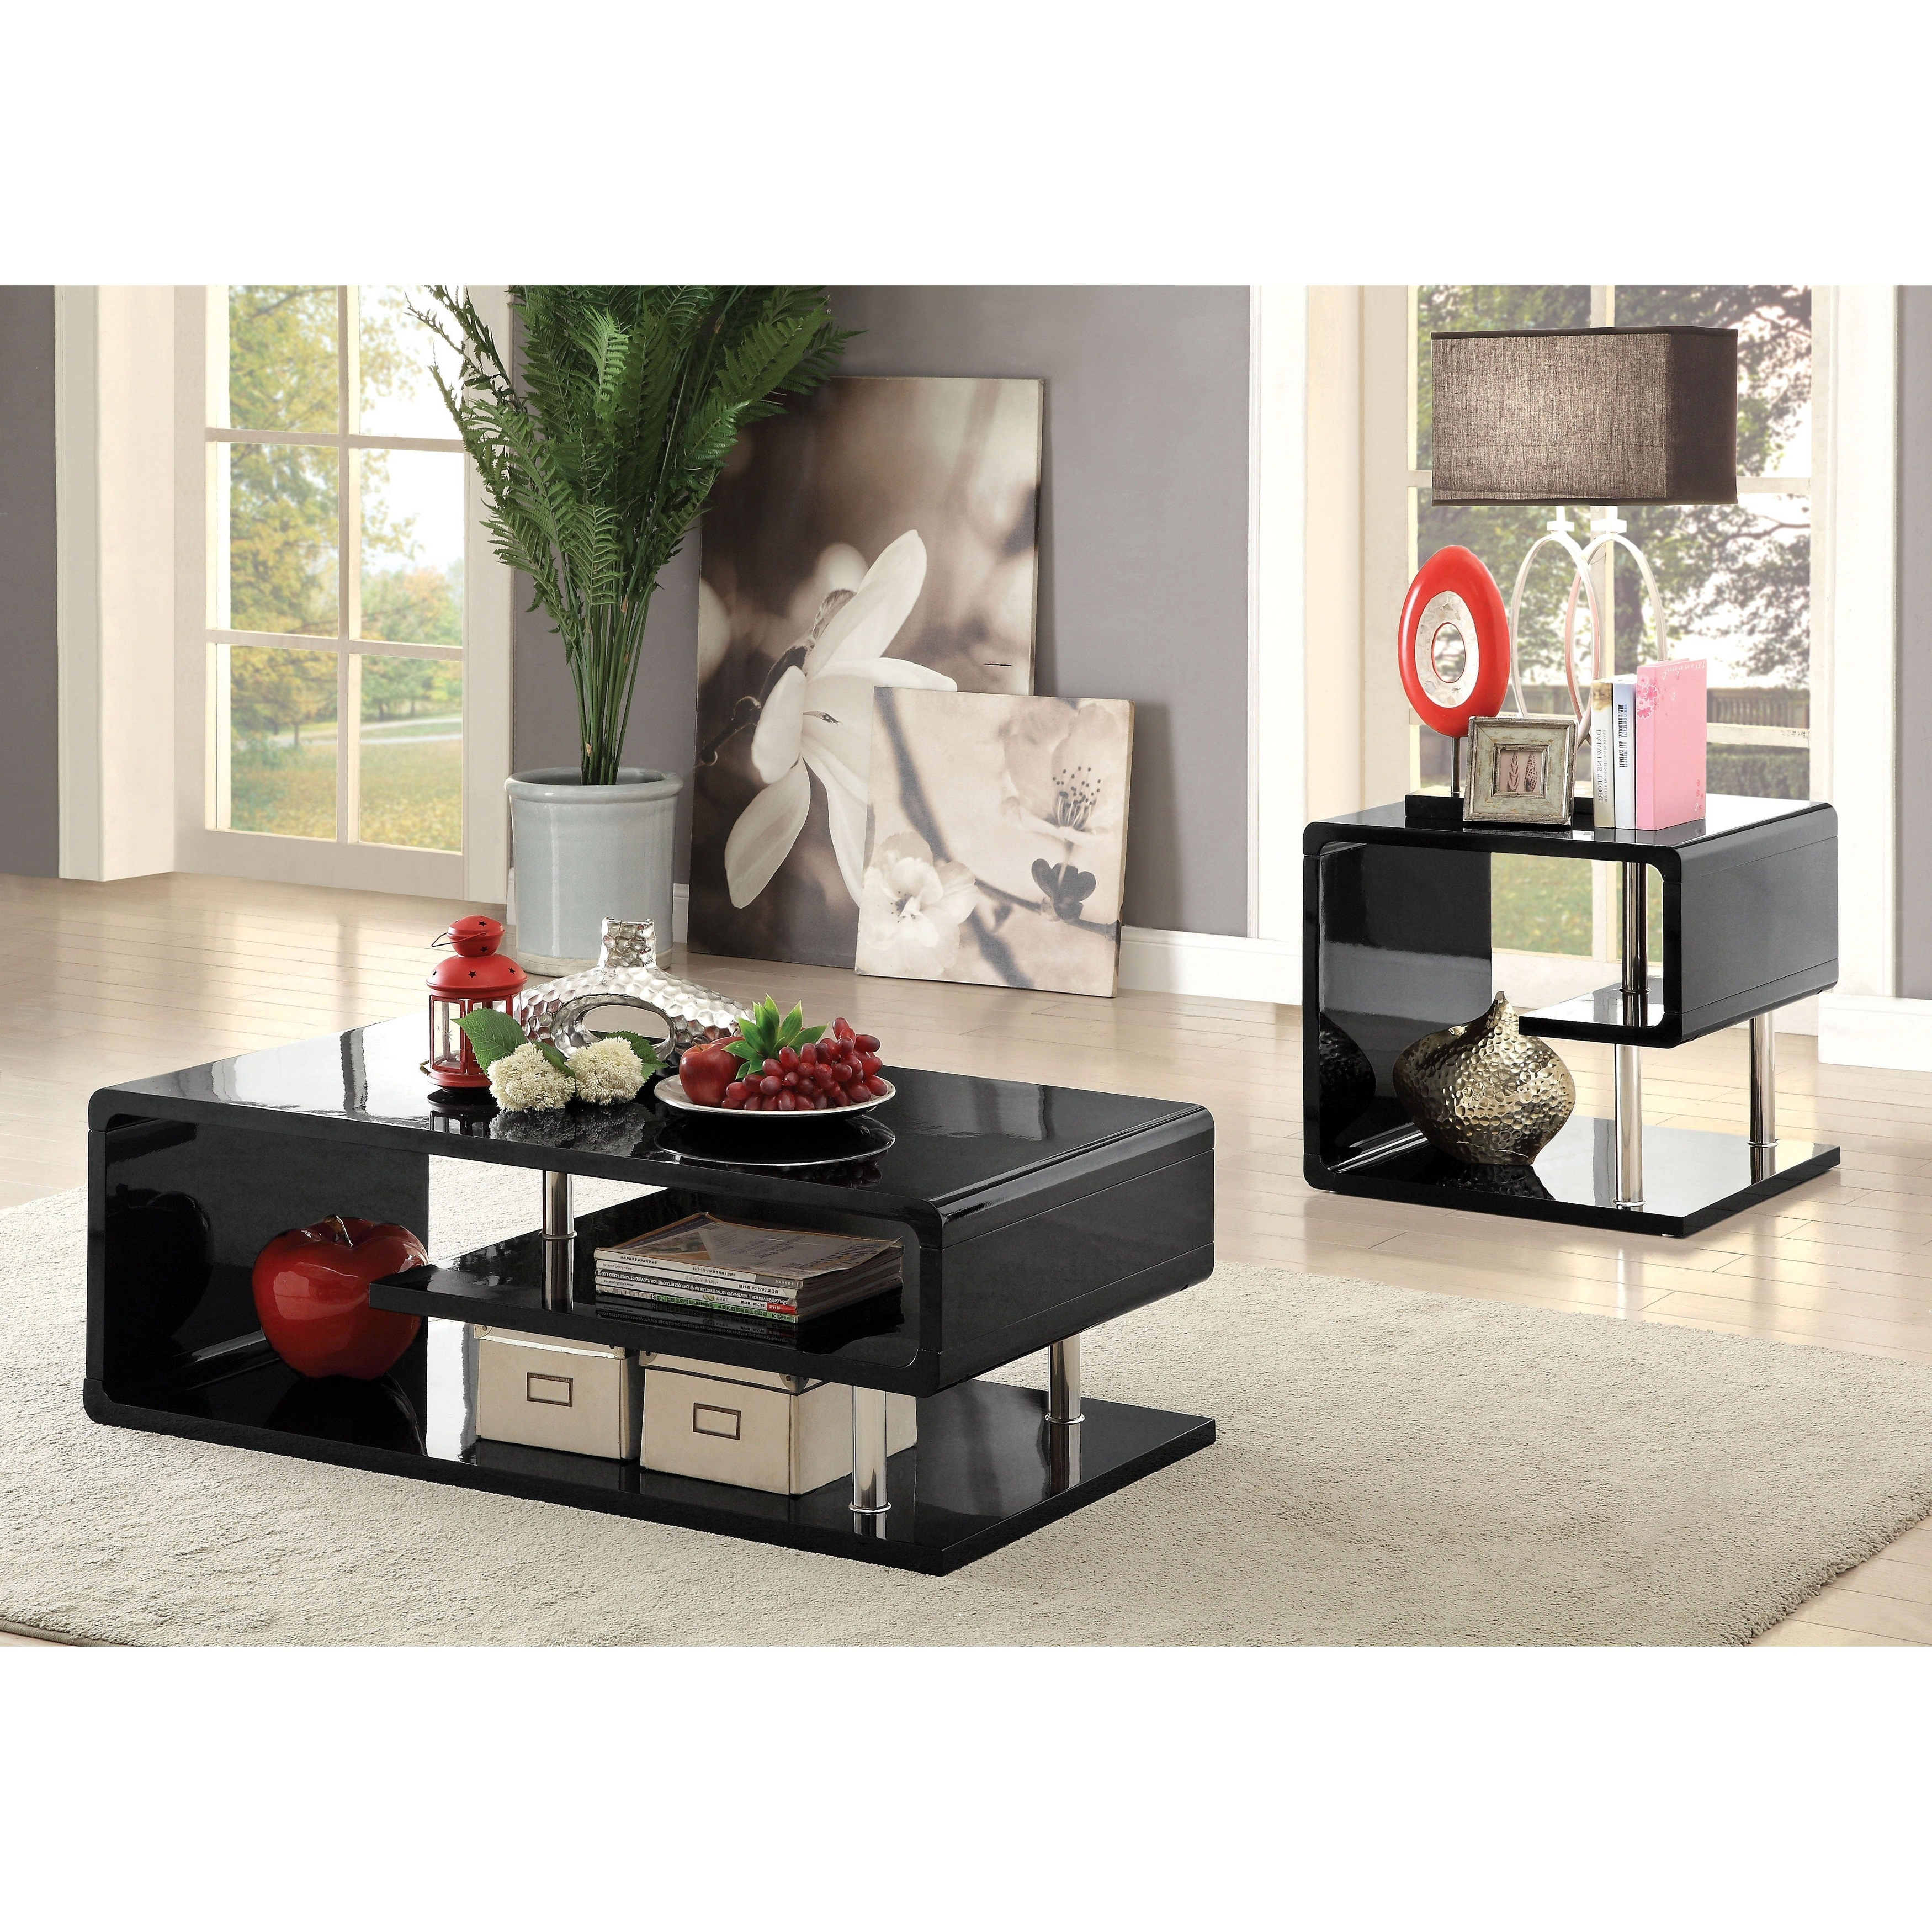 Strick & Bolton Sylvia Geometric High Gloss End Table Throughout Most Popular Strick & Bolton Sylvia Geometric High Gloss Coffee Tables (View 4 of 20)